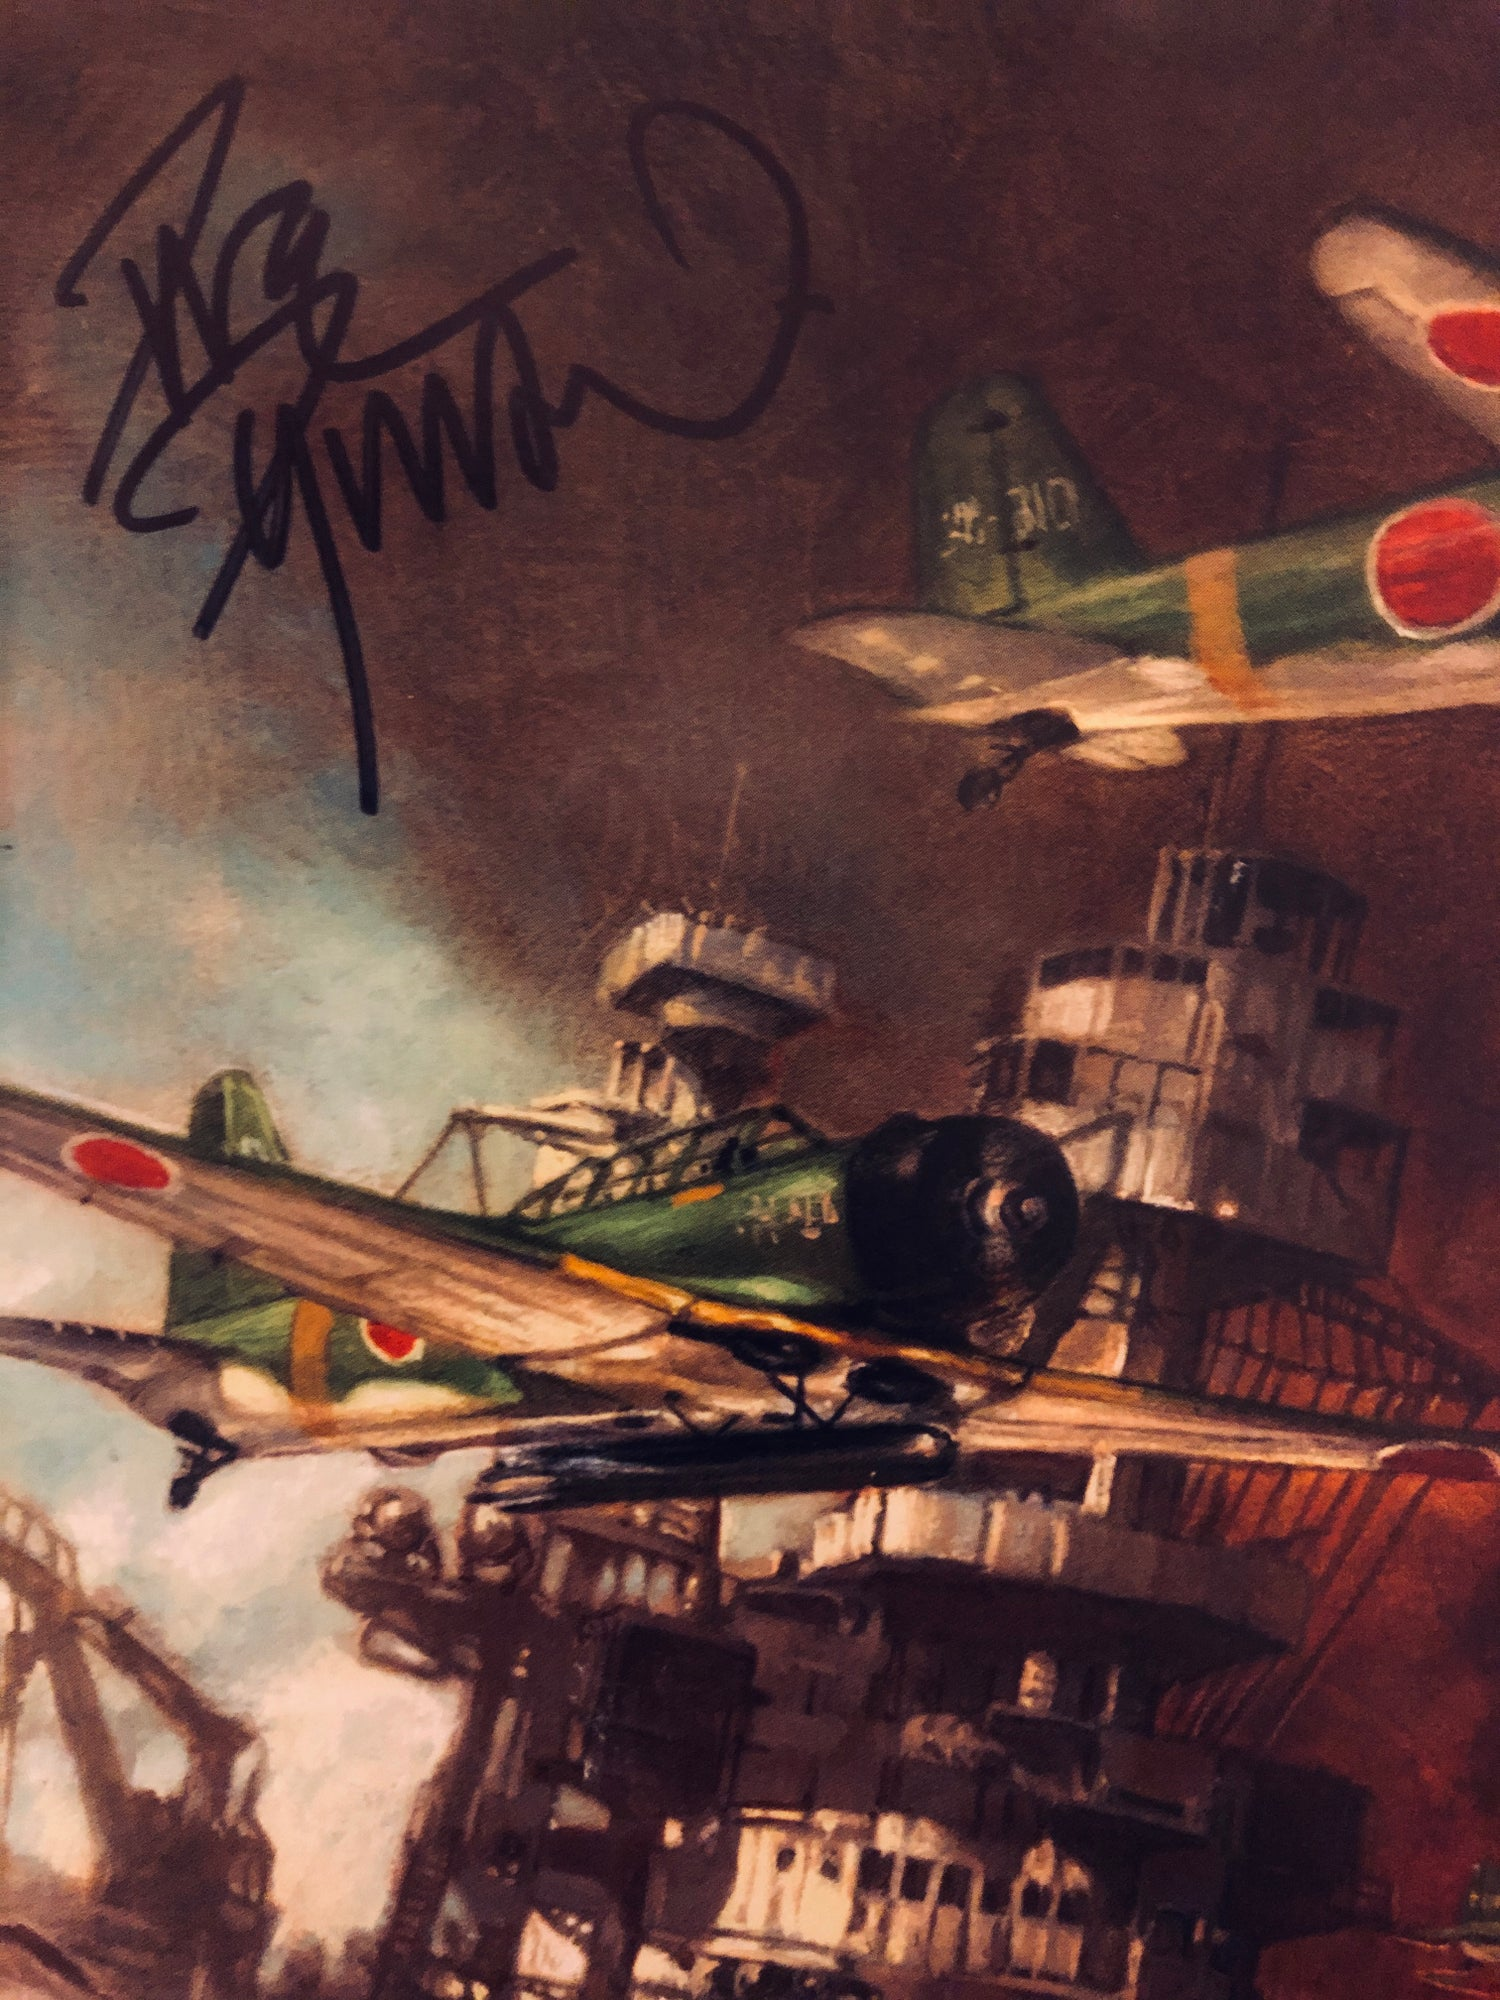 Image of PEARL HARBOR: FROM THE PAGES OF COMBAT (Dave Dorman SIGNED variant cover)